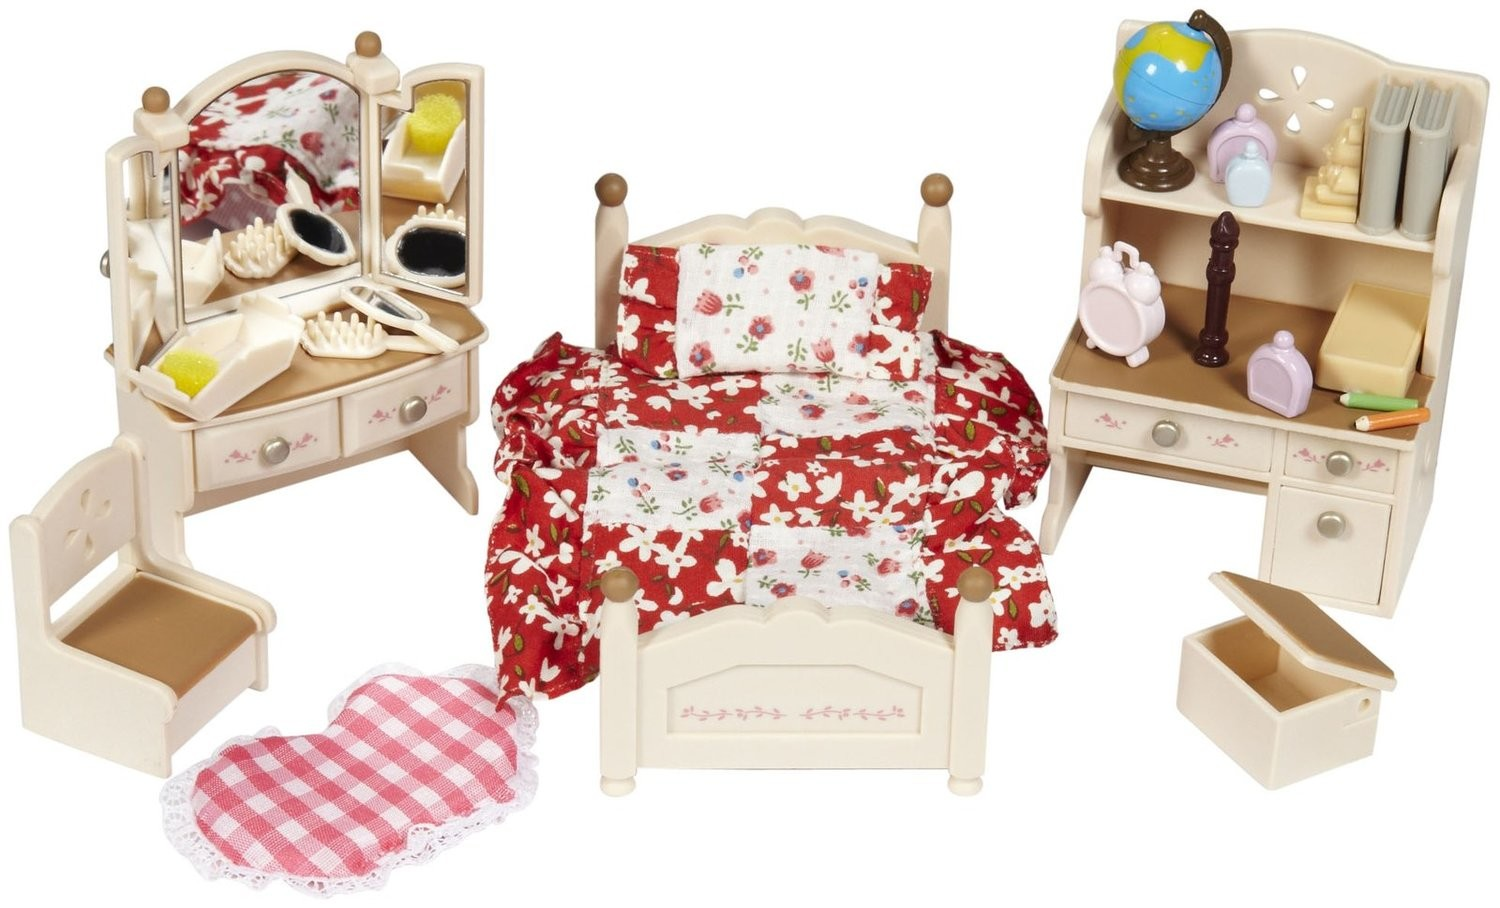 sister's bedroom set  calico critters usa canada cc2268